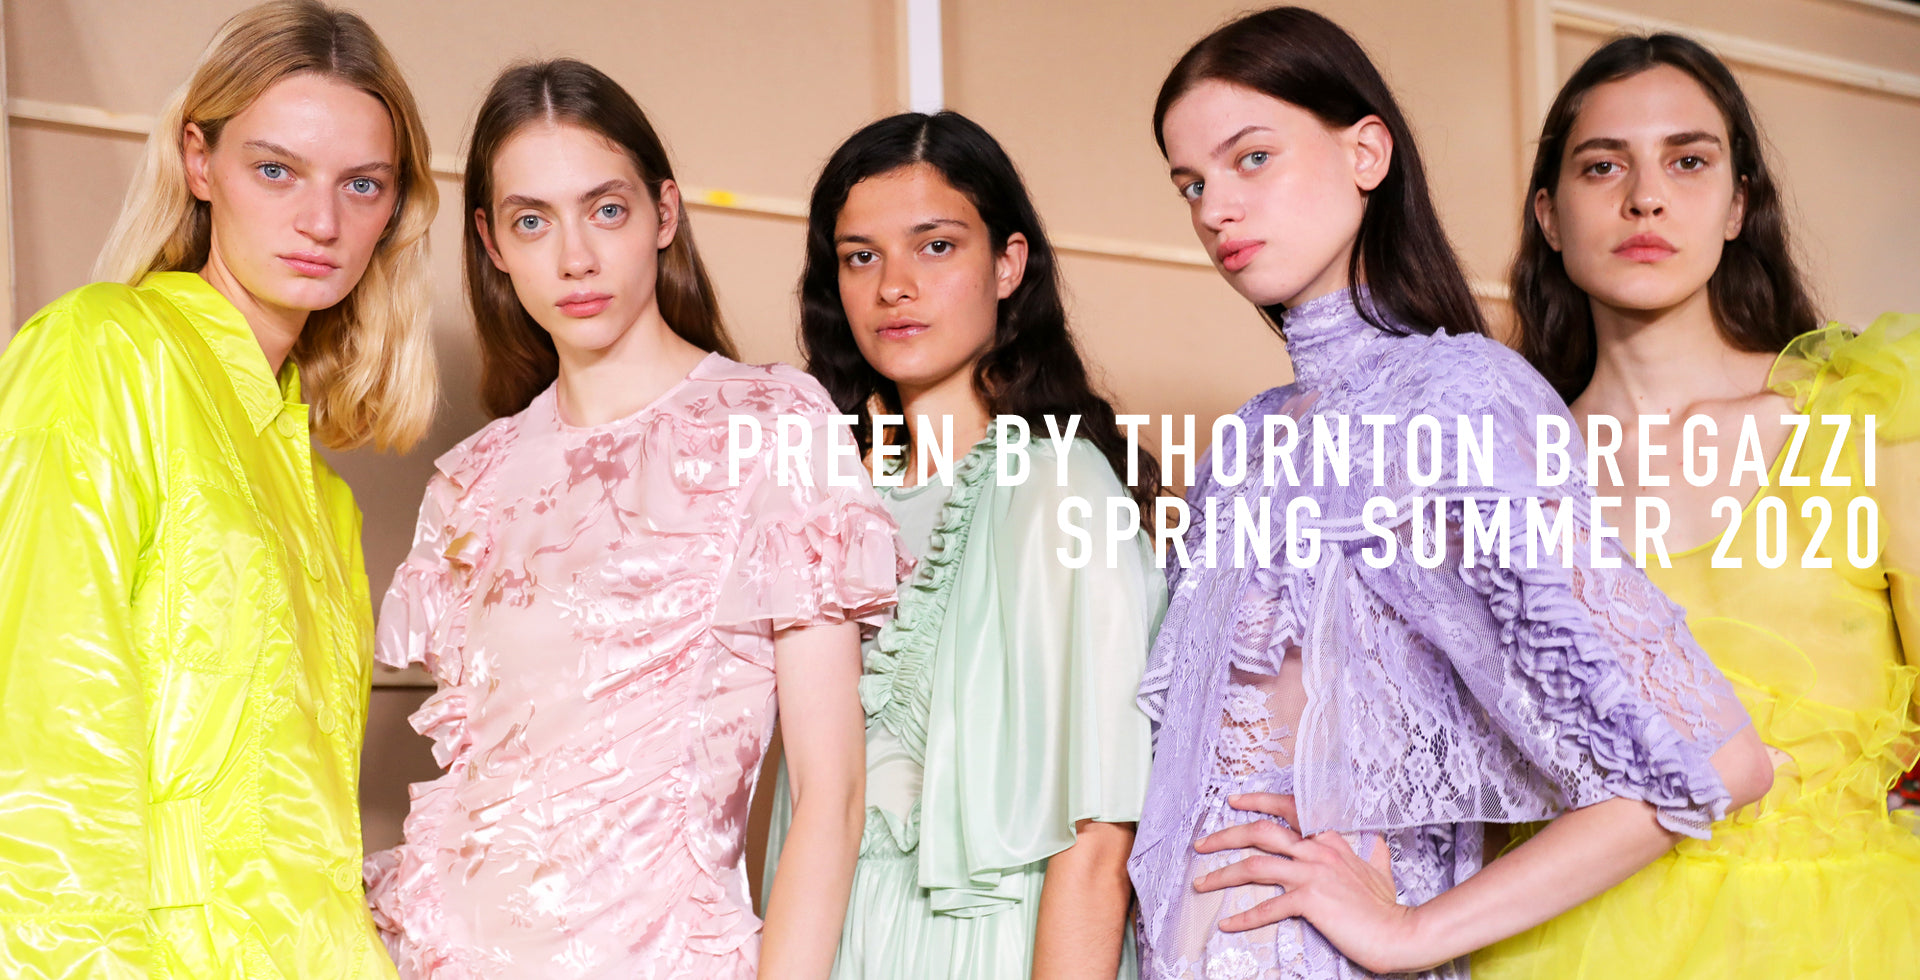 PREEN BY THORNTON BREGAZZI SPRING EE 2020 RUNWAY SHOW FOR LOND